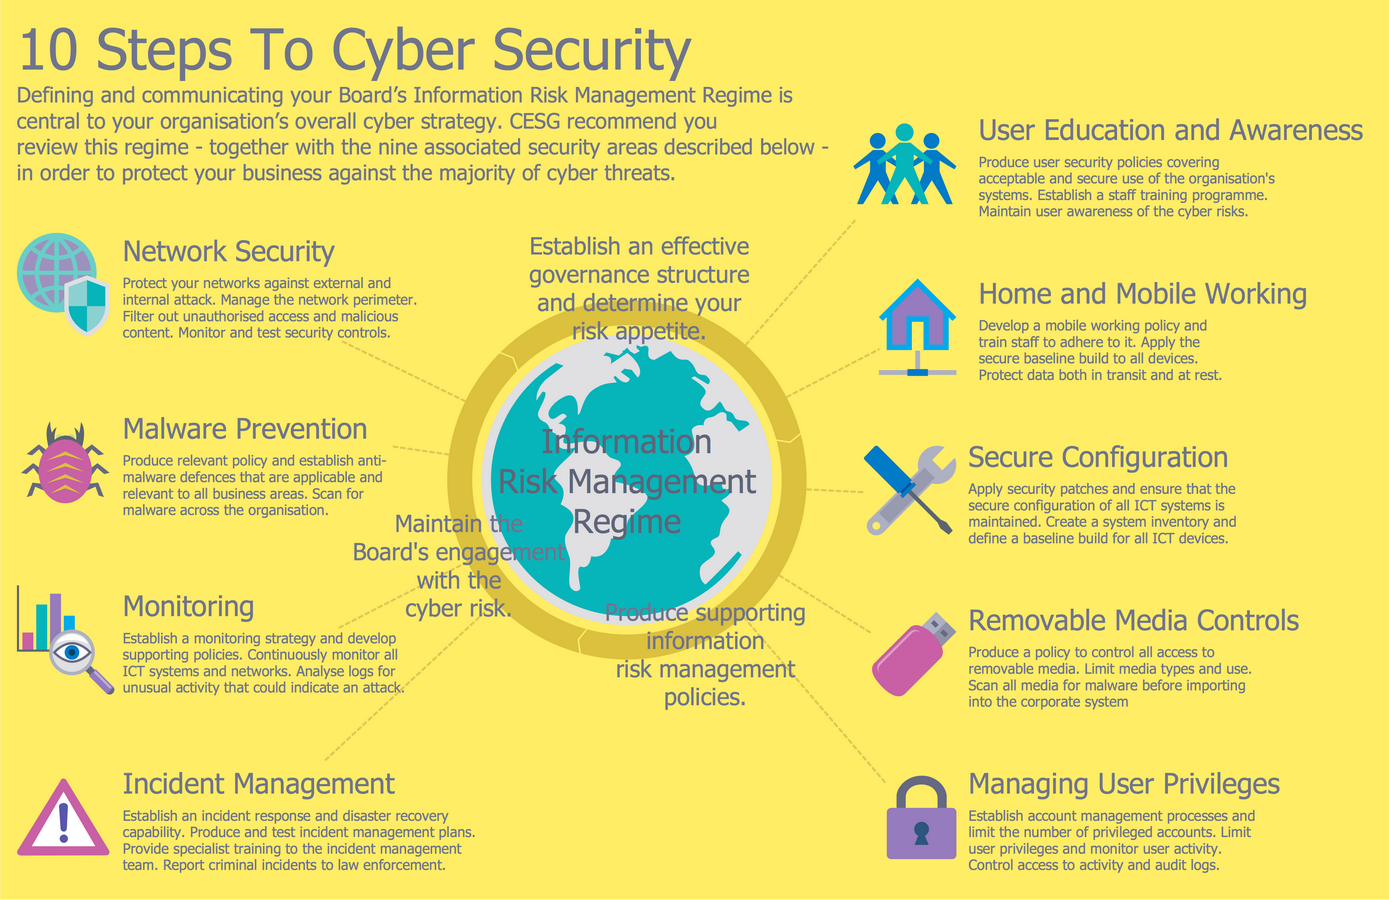 10 Steps to Cybersecurity